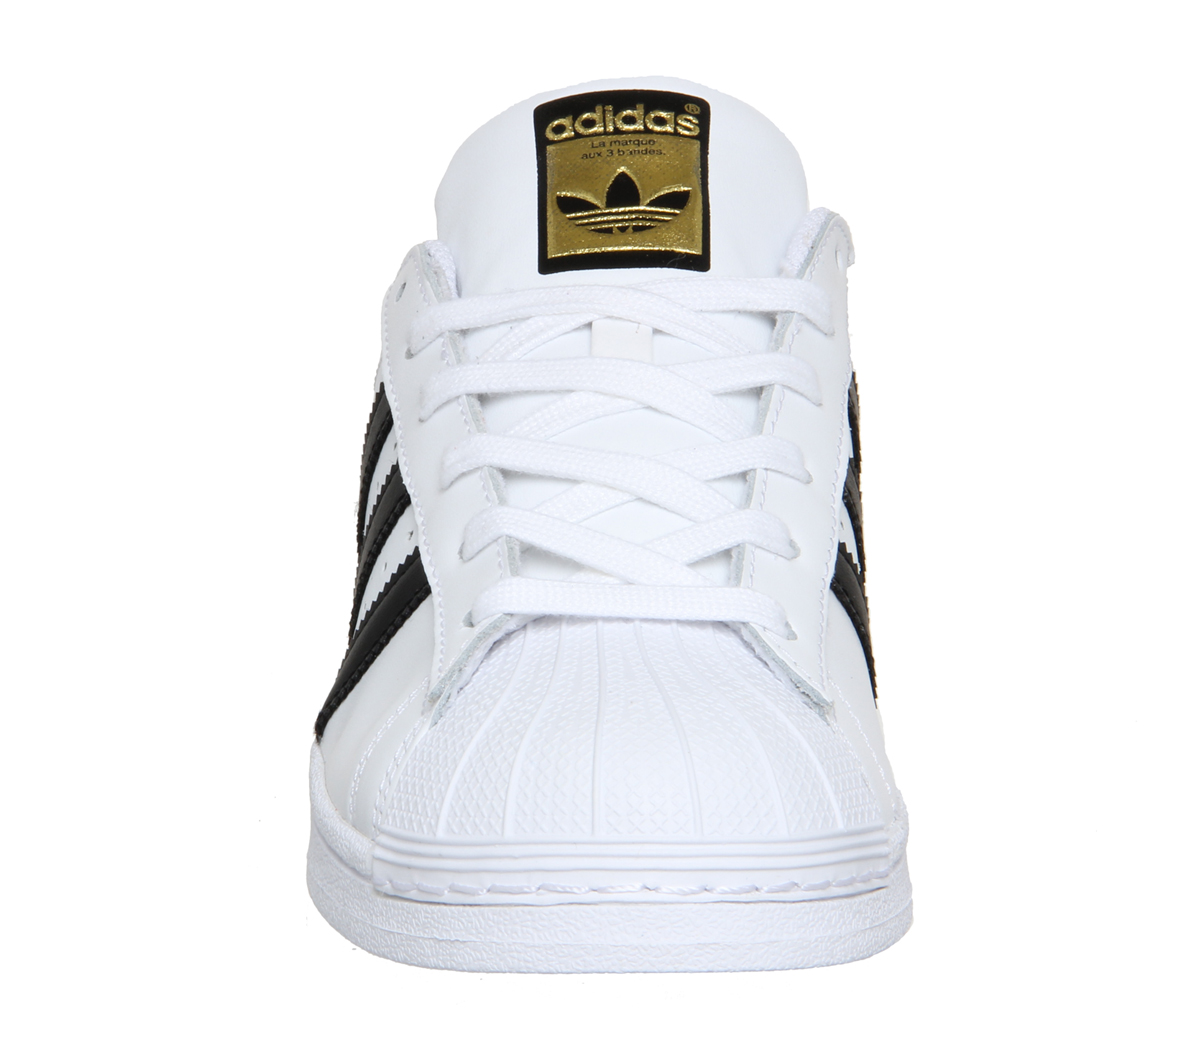 womens adidas superstar white black foundation trainers shoes ebay. Black Bedroom Furniture Sets. Home Design Ideas